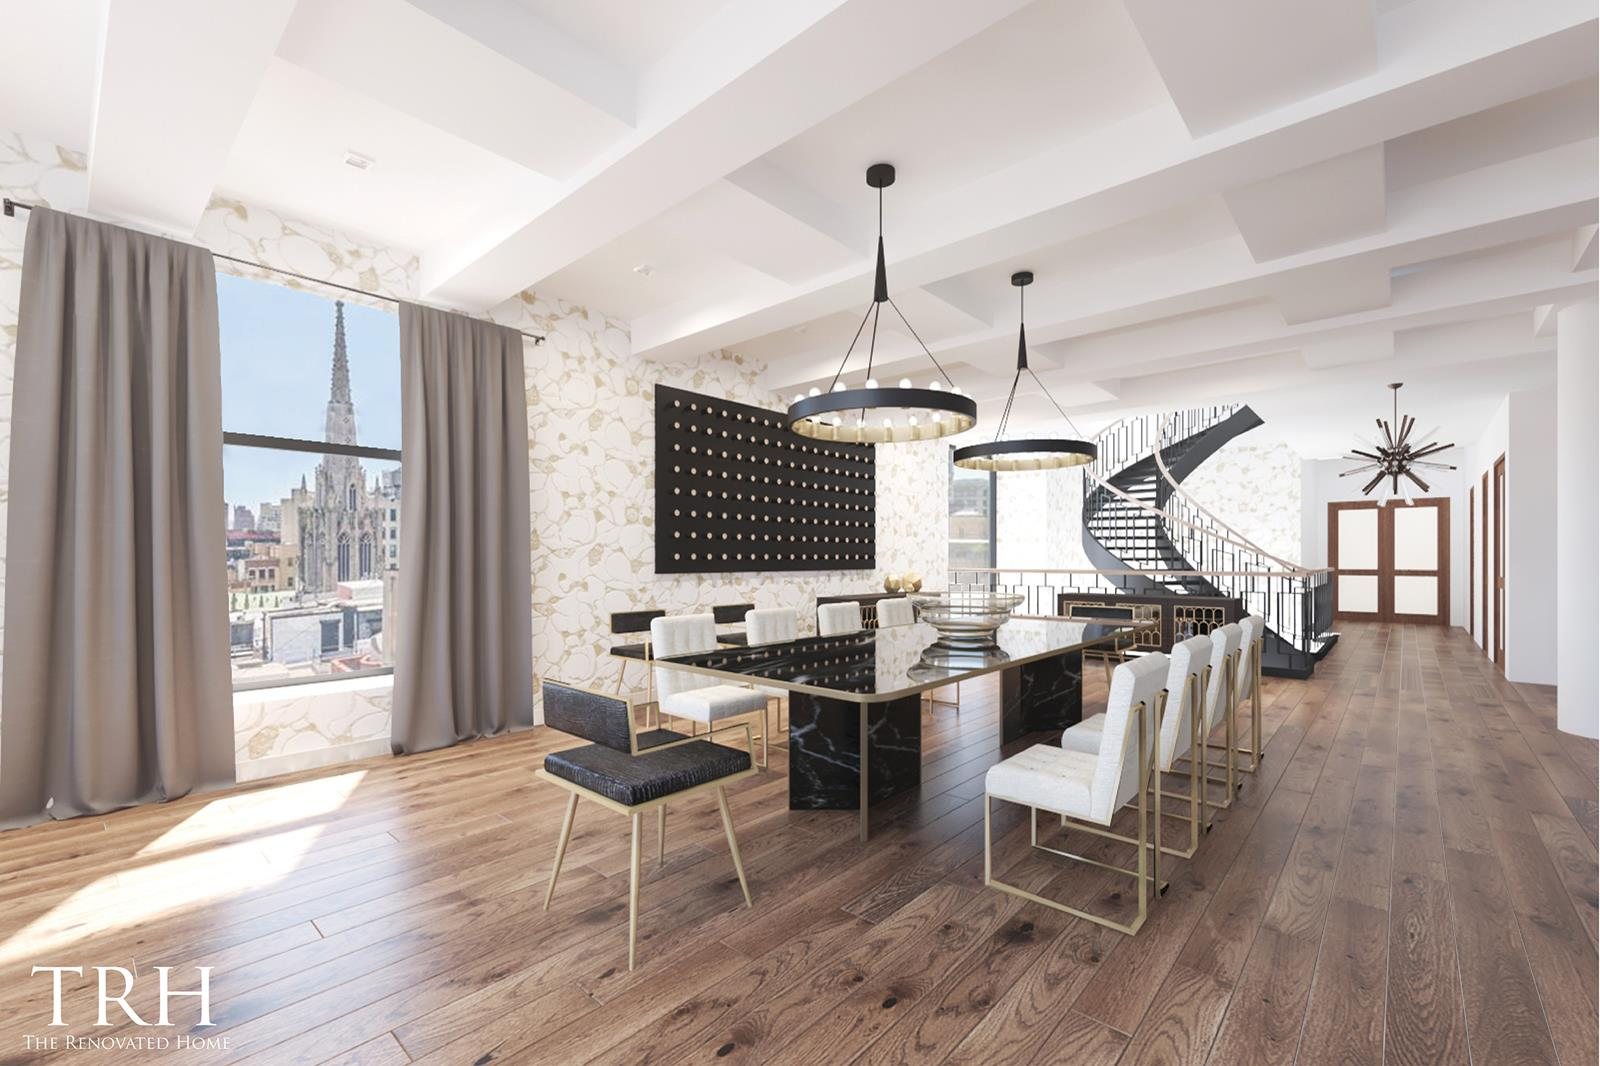 "* UNIT IS BEING OFFERED AS A WHITE BOX WITH A $1,000,000 DESIGN/RENOVATION CREDIT AT CLOSING. ONCE-IN-A-LIFETIME OPPORTUNITY TO DESIGN AND CREATE A TROPHY PENTHOUSE *A one-of-a-kind floor-through triplex graced with a colossal 2,342 sq. ft. rooftop terrace, this stunning 4-bedroom, 7-bathroom penthouse is a blank canvas that, when finished, is sure to become a Greenwich Village masterpiece. The home is mid-renovation, but already has pristine hardwood floors, re-skimmed sheetrock, and all top-of-the-line infrastructure, wiring, and home-automation systems in place. The PH also comes delivered with a top-of-the-line appliance package including a 78-bottle dual zone wine refrigerator, a six-burner Viking range, Miele microwave and steam oven, Bosch dishwasher, and a Sub-Zero 36"" Integrated Combination refrigerator/freezer. Everything else, from lighting and bathroom fixtures to kitchen surfaces and finishes, is patiently awaiting customization.Features of this 7,693 sq. ft. home include airy beamed ceilings, direct keyed elevator to every floor, quadruple exposure, a series of arched casement windows with deep sills, a washer/dryer hookup, a powder room on every floor, a solarium/green house, views of One World Trade Center, Grace Church, and the Empire State Building, and a staggering sky lit spiral staircase with wrought-iron railing and floating wooden planks.Beyond a spacious foyer, the eighth floor of the home opens into an expansive, open-concept living room, dining room, and kitchen. The space is saturated with northern light via an octet of tall arched windows, and a suite of high-end stainless steel appliances are included with the kitchen. The master suite occupies the other half the eighth floor and boasts a gargantuan walk-in closet, a huge dressing room, and a massive en-suite bathroom with 5 windows, wall niches, a walk-in shower, and an enclosed toilet.The seventh floor of the home contains a trio of large bedrooms, a laundry closet, and an additional living/lounge area. Each bedroom possesses a walk-in closet and a full en-suite bathroom. Completing the home is a luxurious private terrace floor, which features a glass-enclosed solarium/green house, a convenient powder room, and breathtaking 360-degree views of the city skyline.66 East 11th is a 19th Century condominium nestled between Union Square and Washington Square Parks. A converted Dress Factory built in 1897, the building has an ornate terra-cotta fac¸ade and dozens of built-in wellness amenities that include purified air and water, bio-based insulation for sound reduction, and vitamin-infused showers. Located in the heart of the Greenwich Village, the building is surrounded by a number of high-end, historic restaurants, bars, cafes, and shops, and has easy access to the rest of the Village, NoHo, SoHo, the Flatiron District, and Gramercy. Pets are welcome."